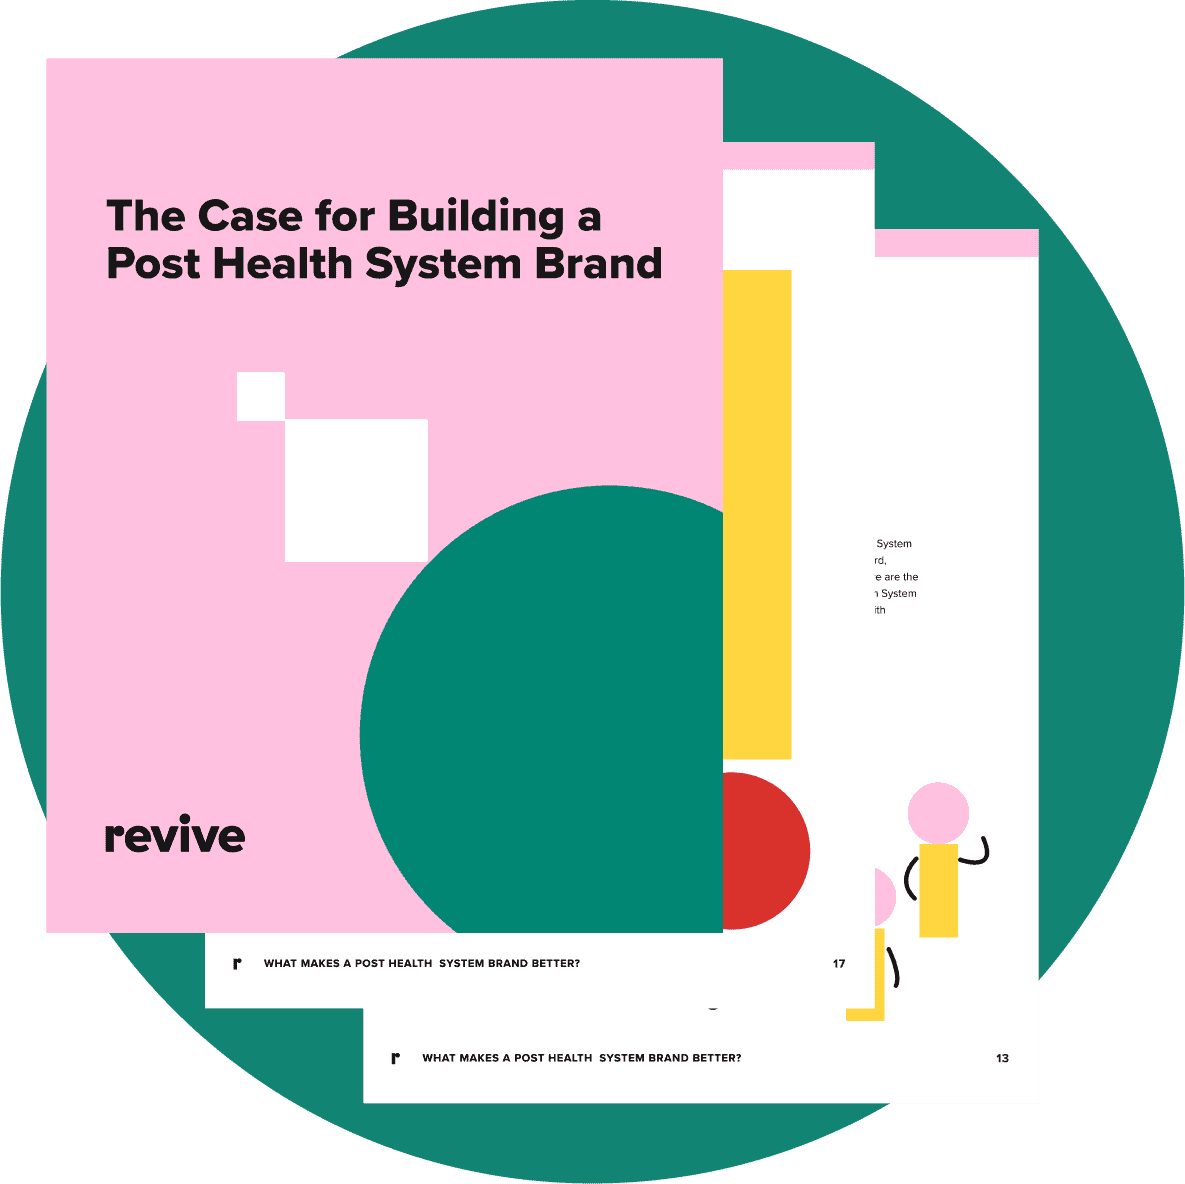 The case for building a post health system brand